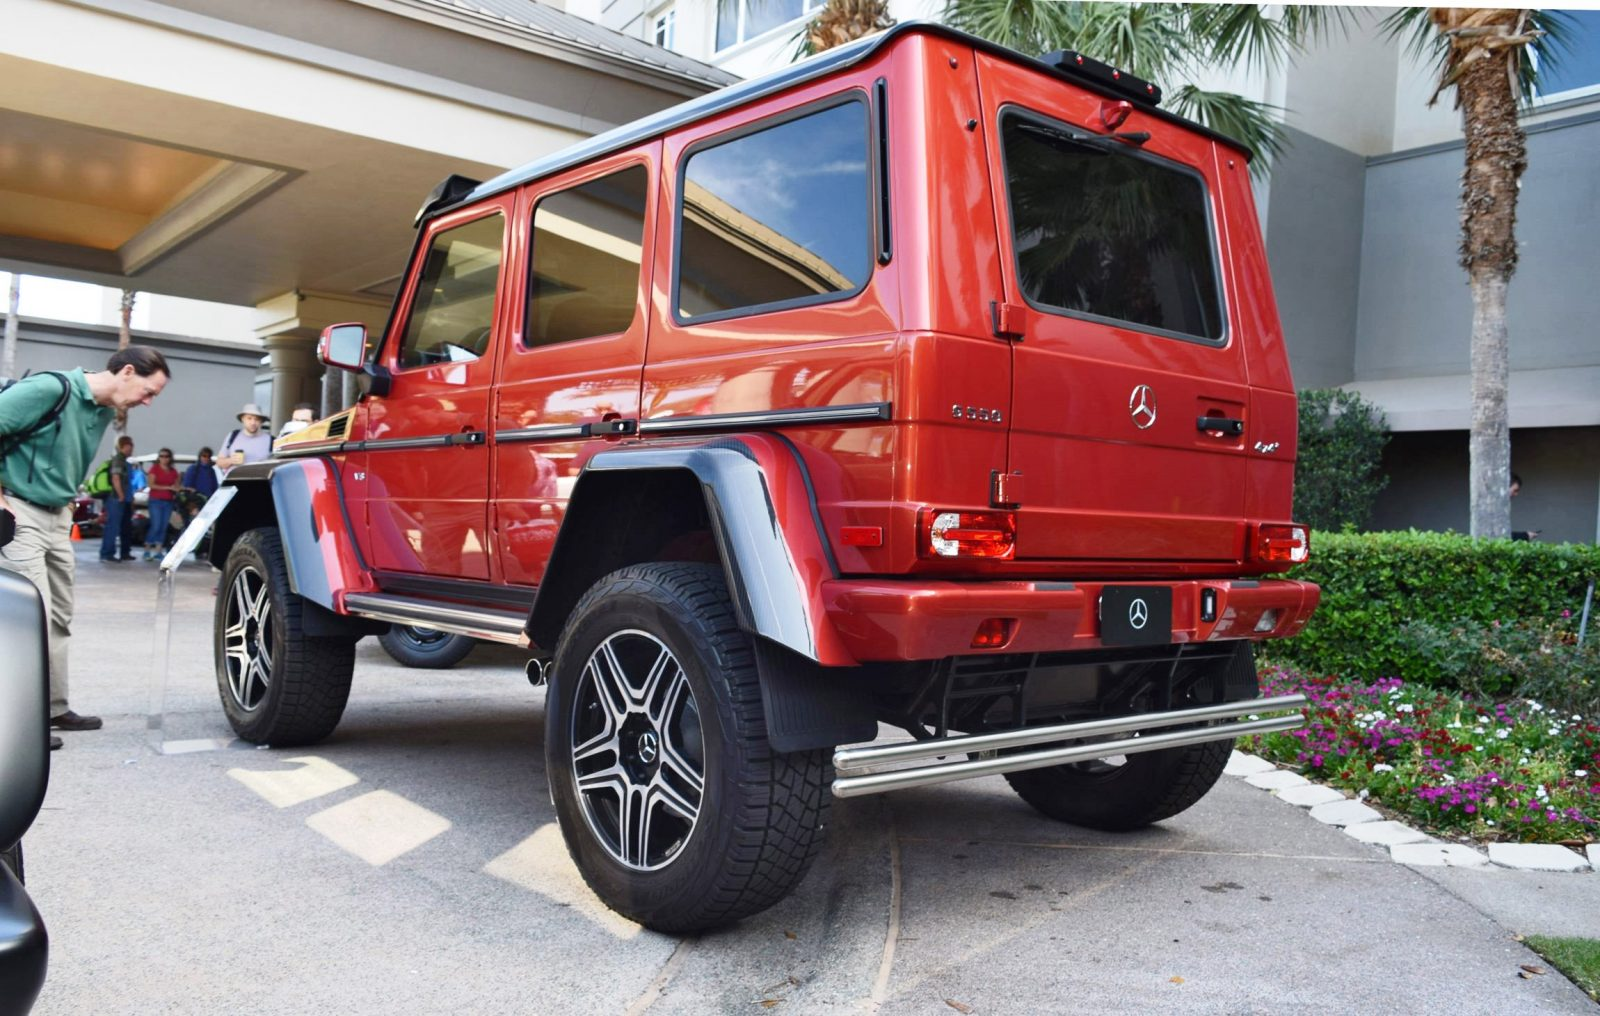 2017 mercedes benz g550 4x4 at amelia island concours 45 for 2017 mercedes benz g550 4x4 squared